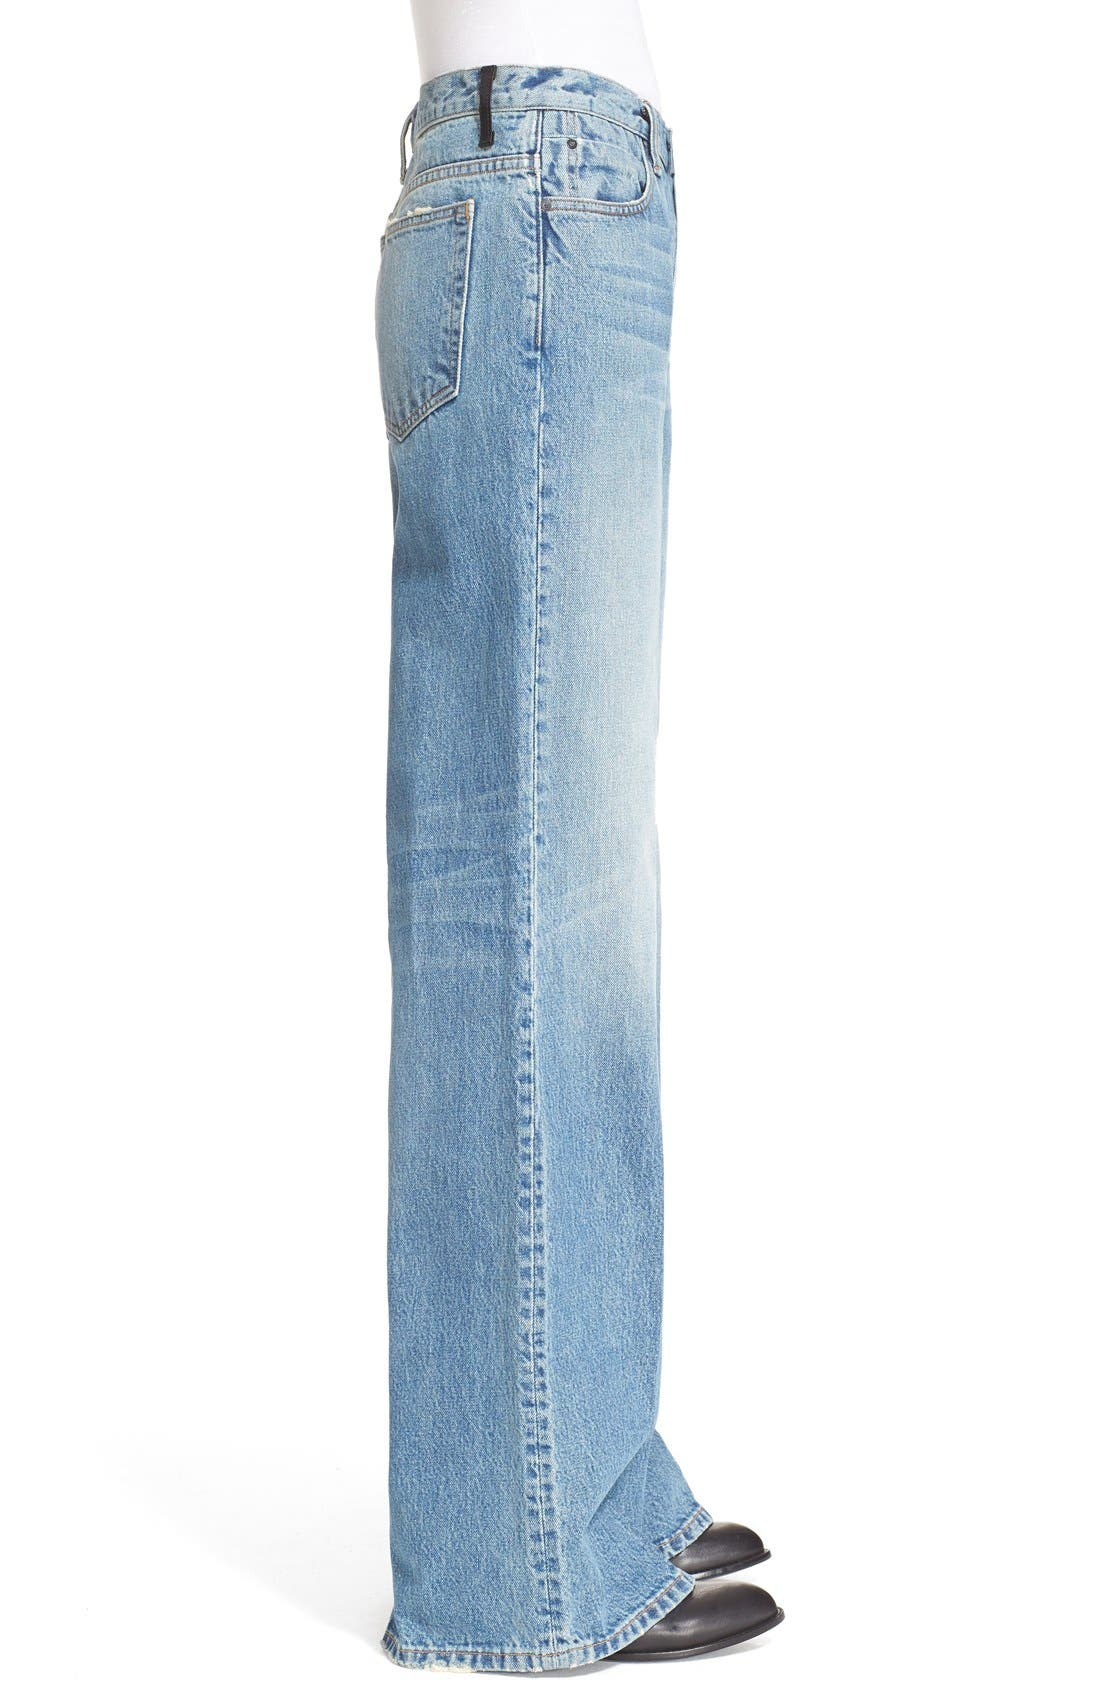 Denim x Alexander Wang Rave Wide Leg Jeans,                             Alternate thumbnail 4, color,                             453